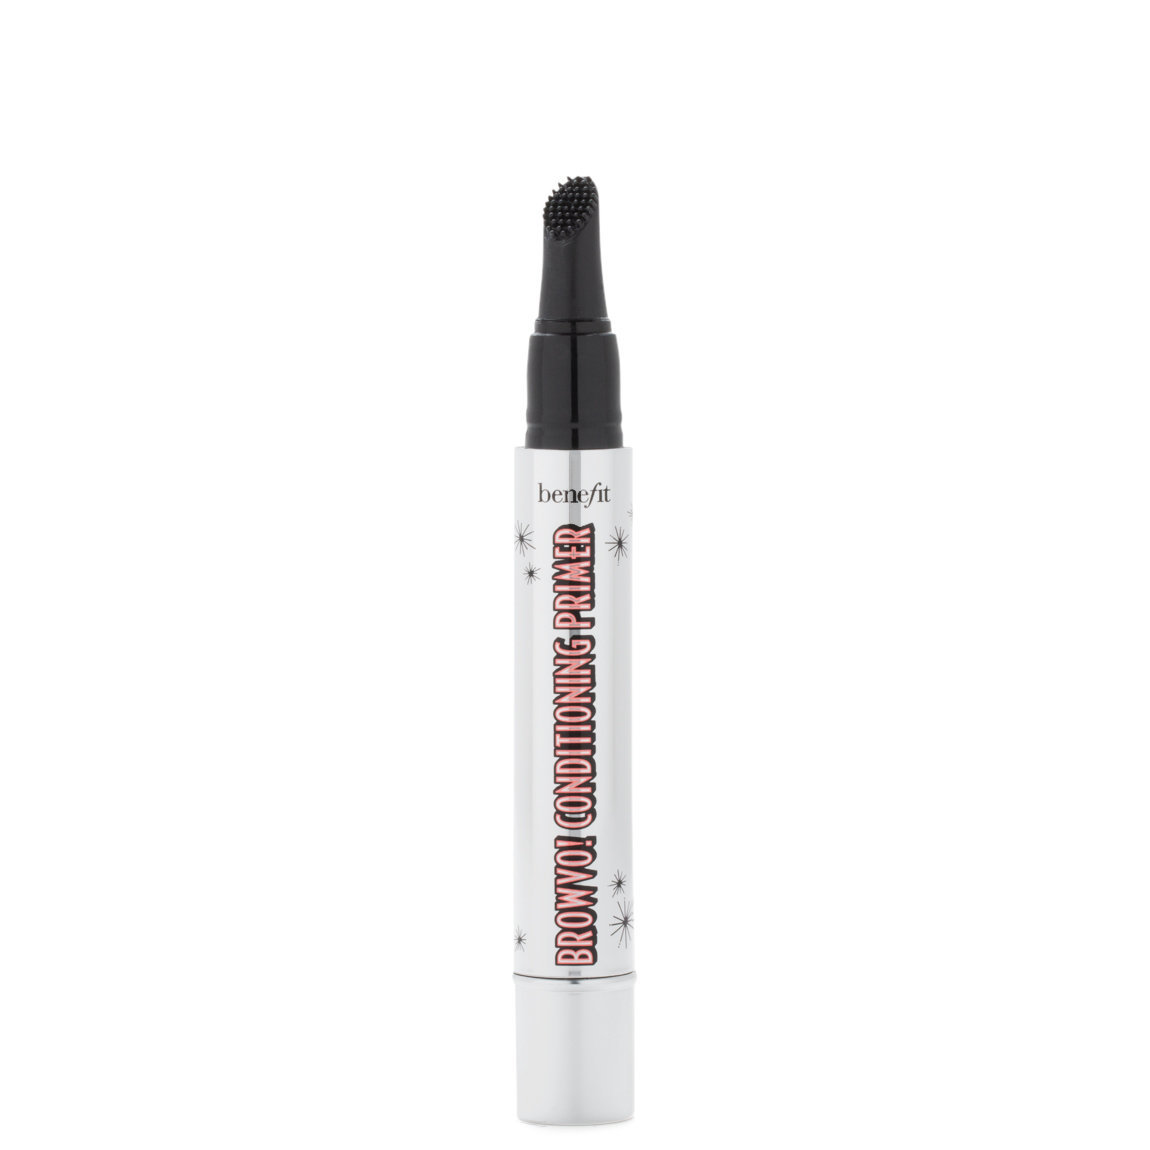 Benefit Cosmetics Browvo! Conditioning Eyebrow Primer product smear.